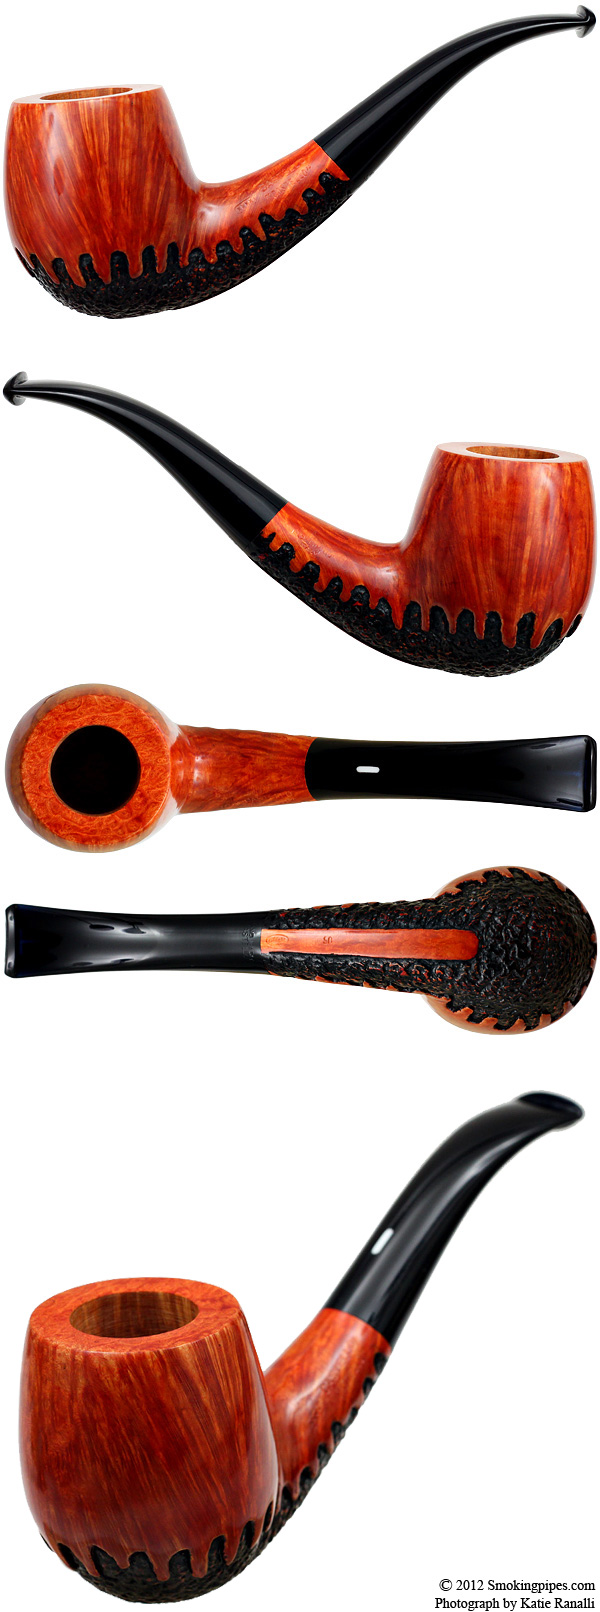 'Castello' Bent Billiard (KKKK)